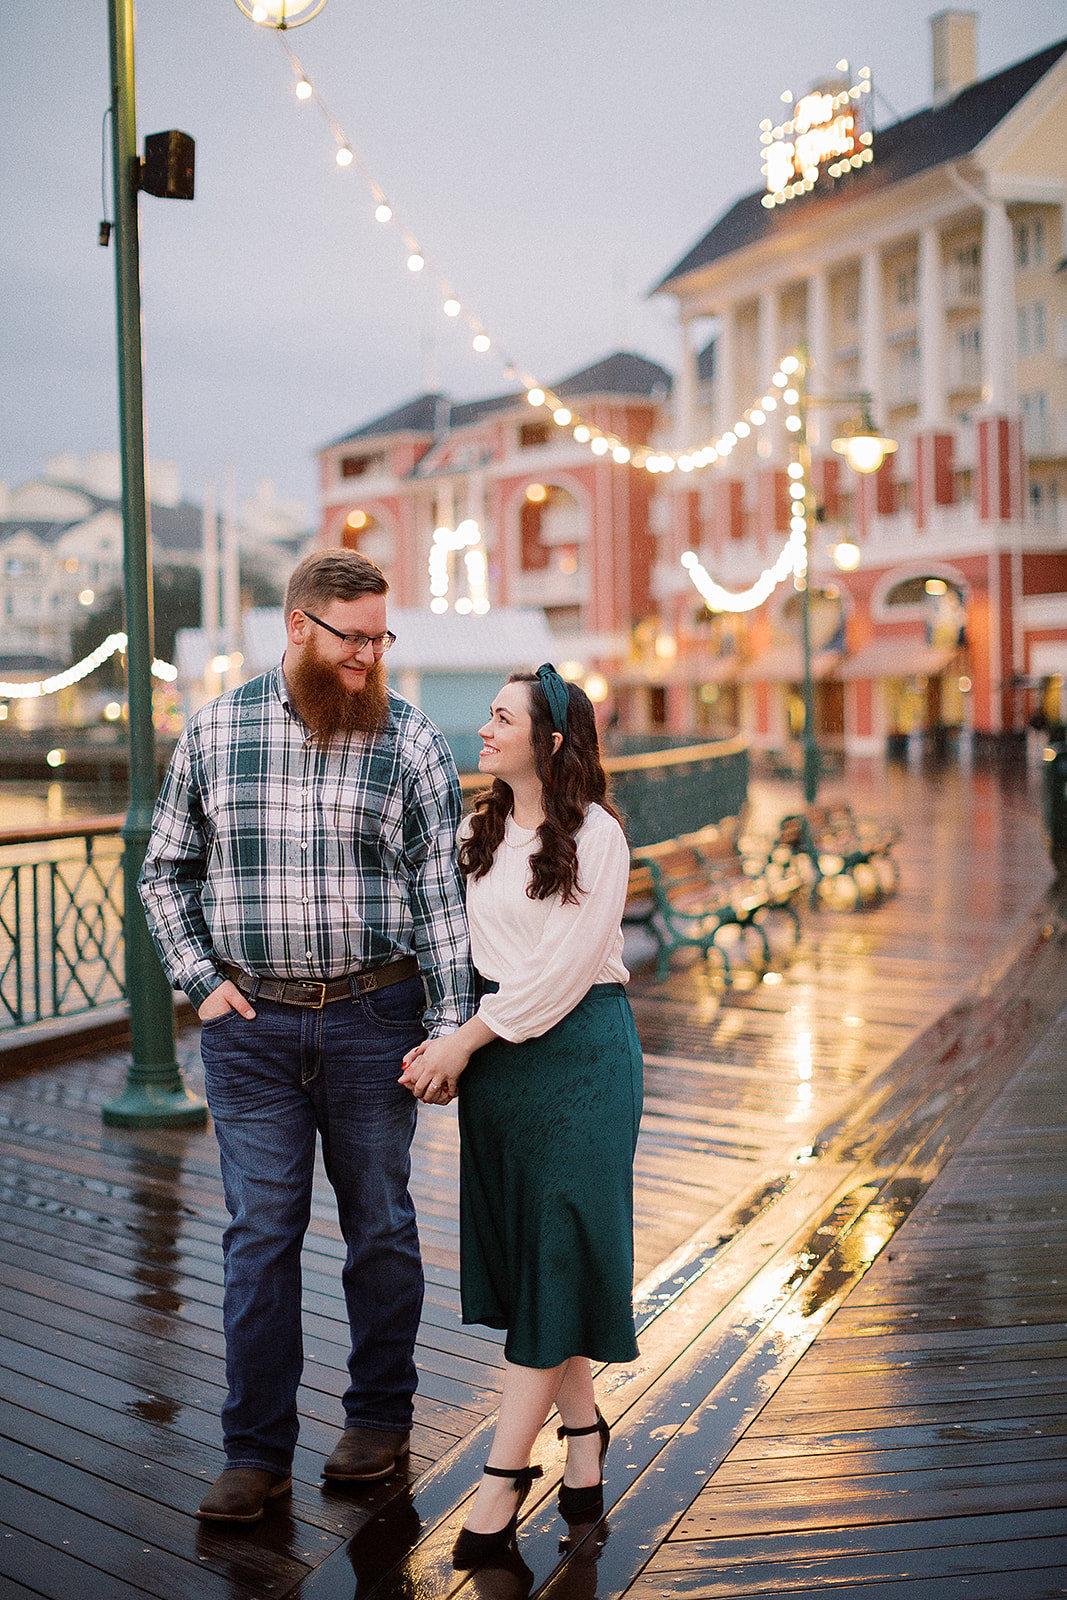 Cassidy_+_Kylor_Proposal_at_Disney_s_Beach_Club_Resort_Photographer_Casie_Marie_Photography-146